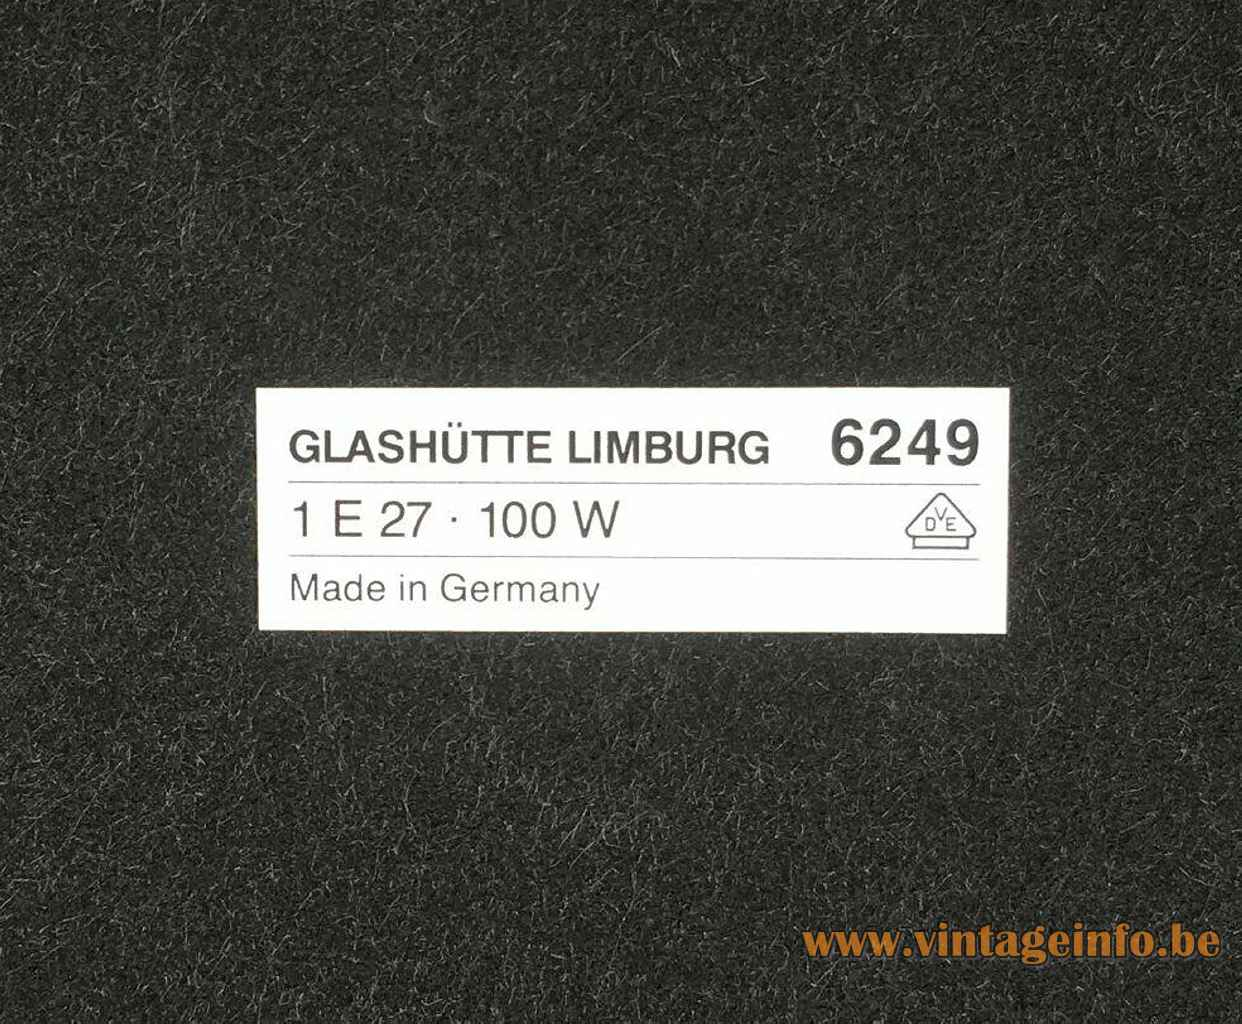 Glashütte Limburg 6249 table lamp frectangular label bottom 100 Watt maximum 1970s 1980s Germany